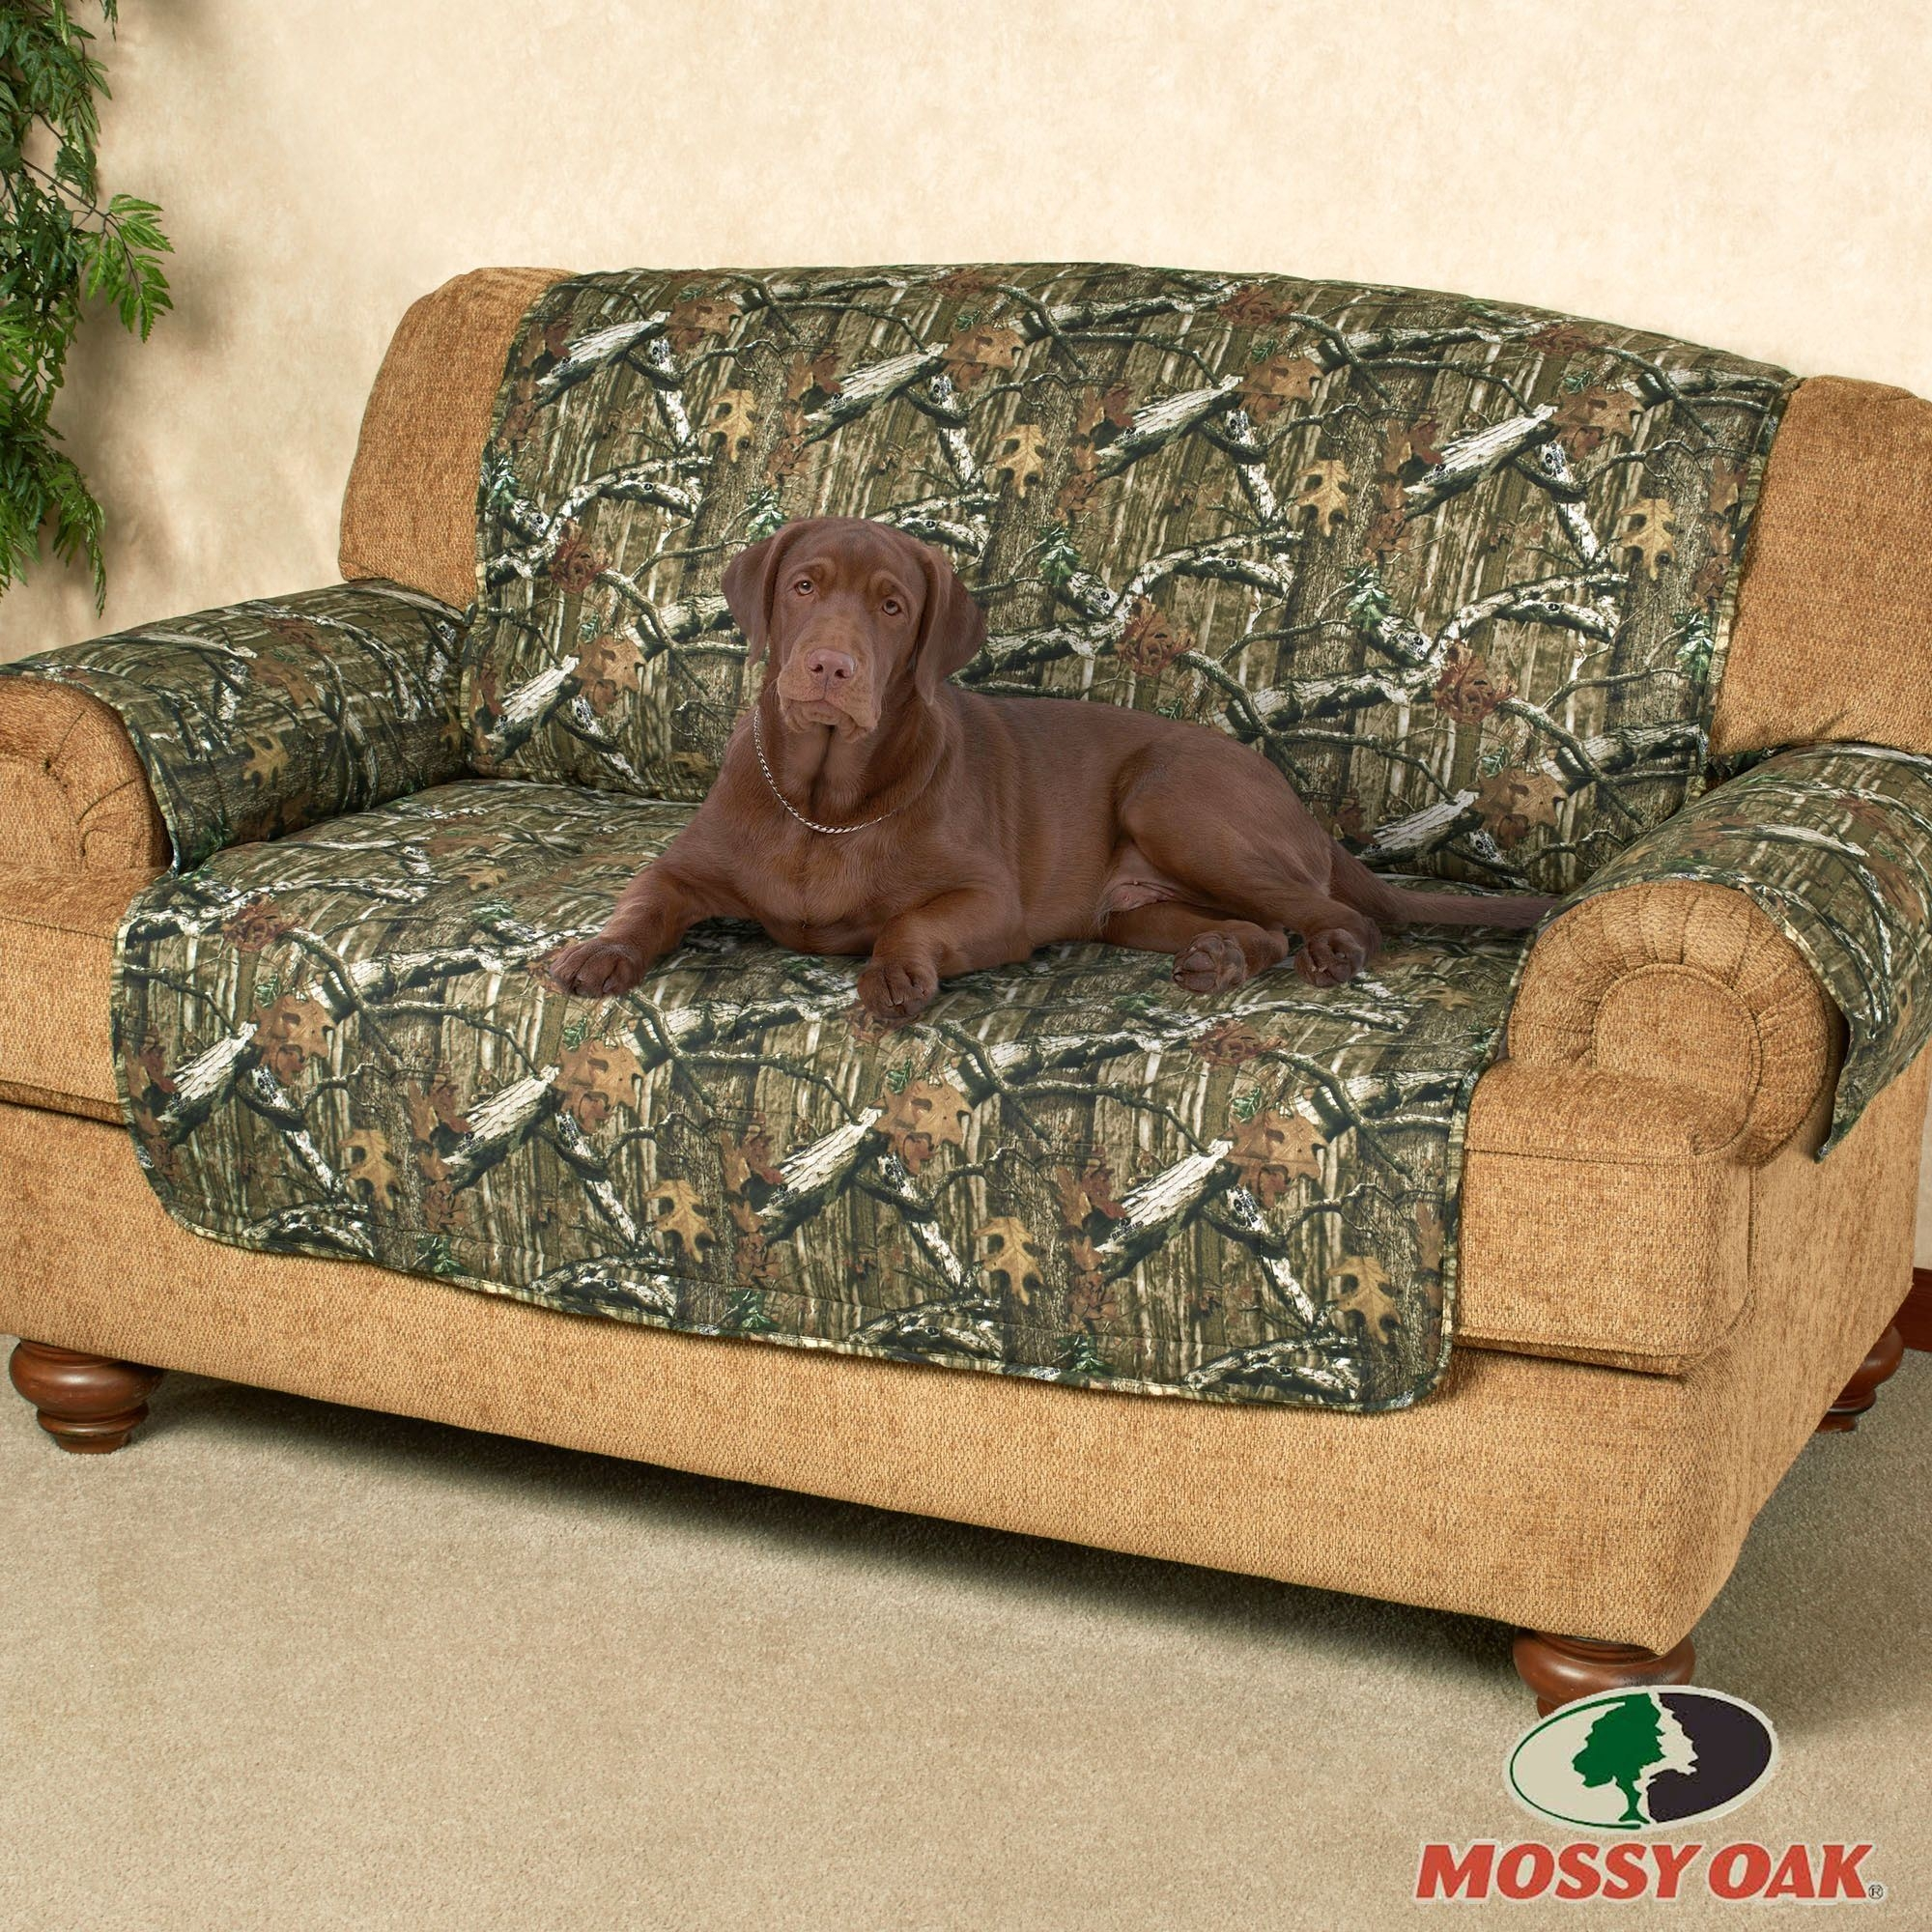 Mossy Oak Break Up Infinity Camo Furniture Protectors Pertaining To Camo Sofa Cover (#7 of 12)